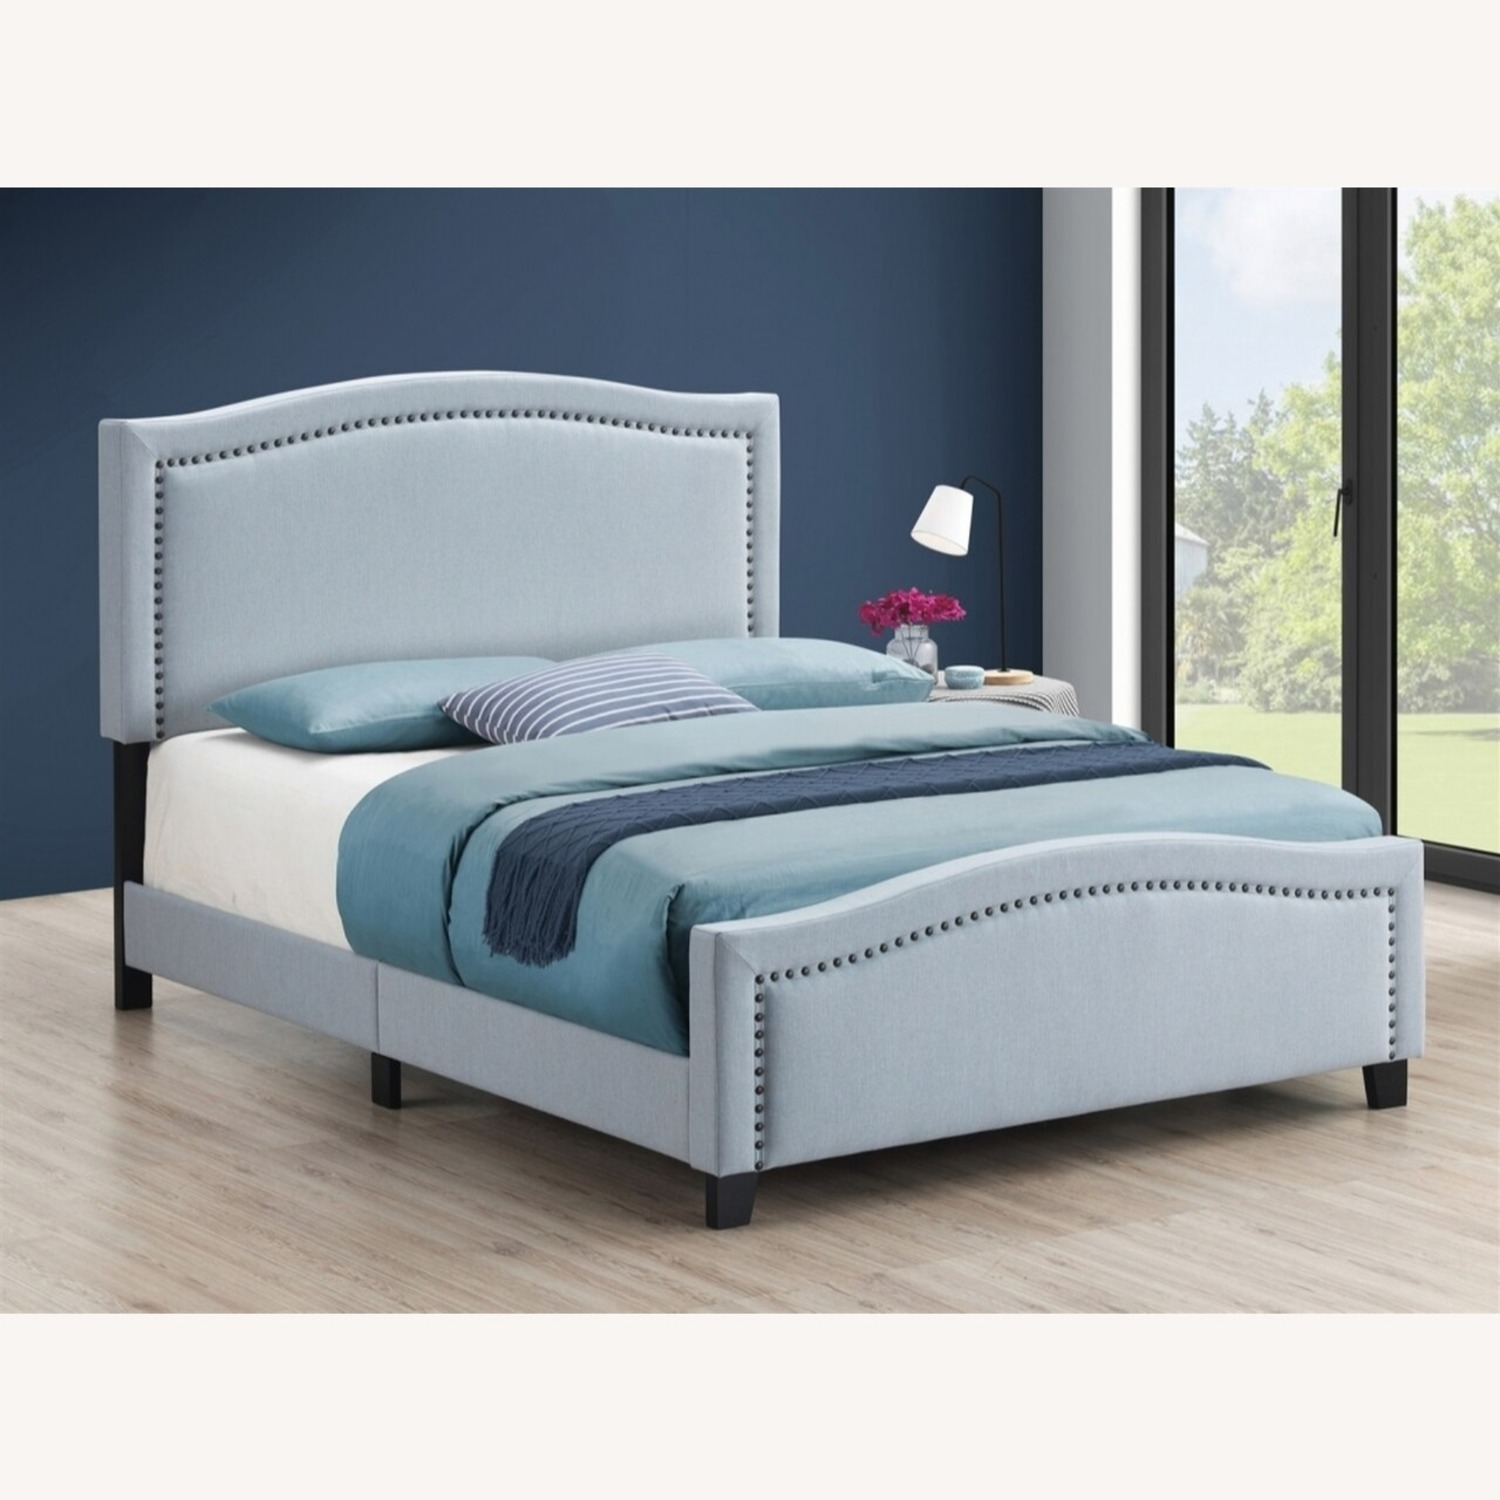 Modern King Bed In Delft Blue Fabric - image-2